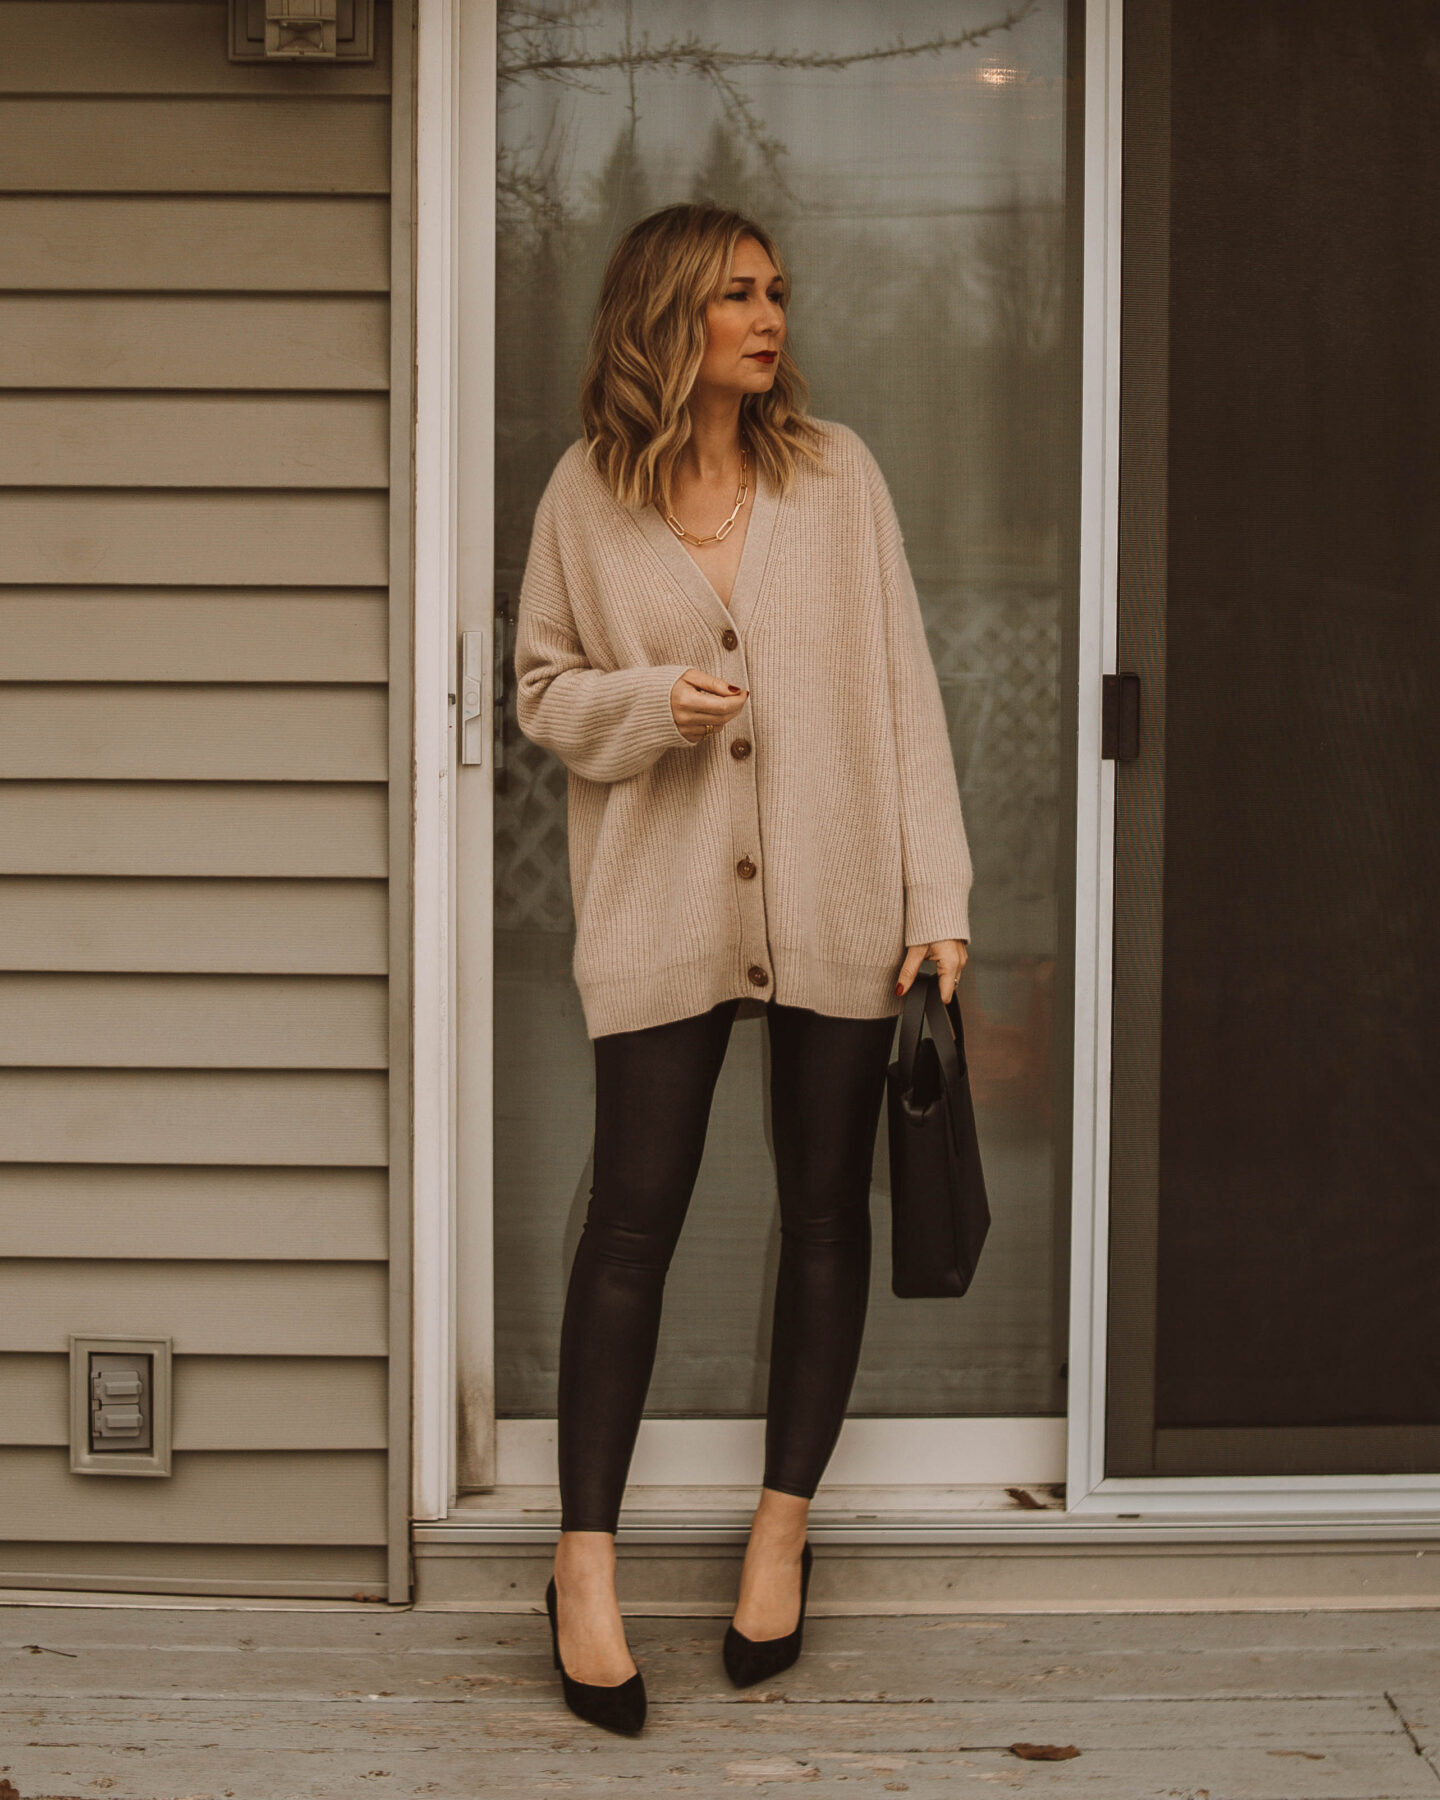 New Years Eve Outfits Feat. Faux Leather Leggings, jenni kayne cashmere cocoon cardigan, spanx faux leather leggings, black suede heels